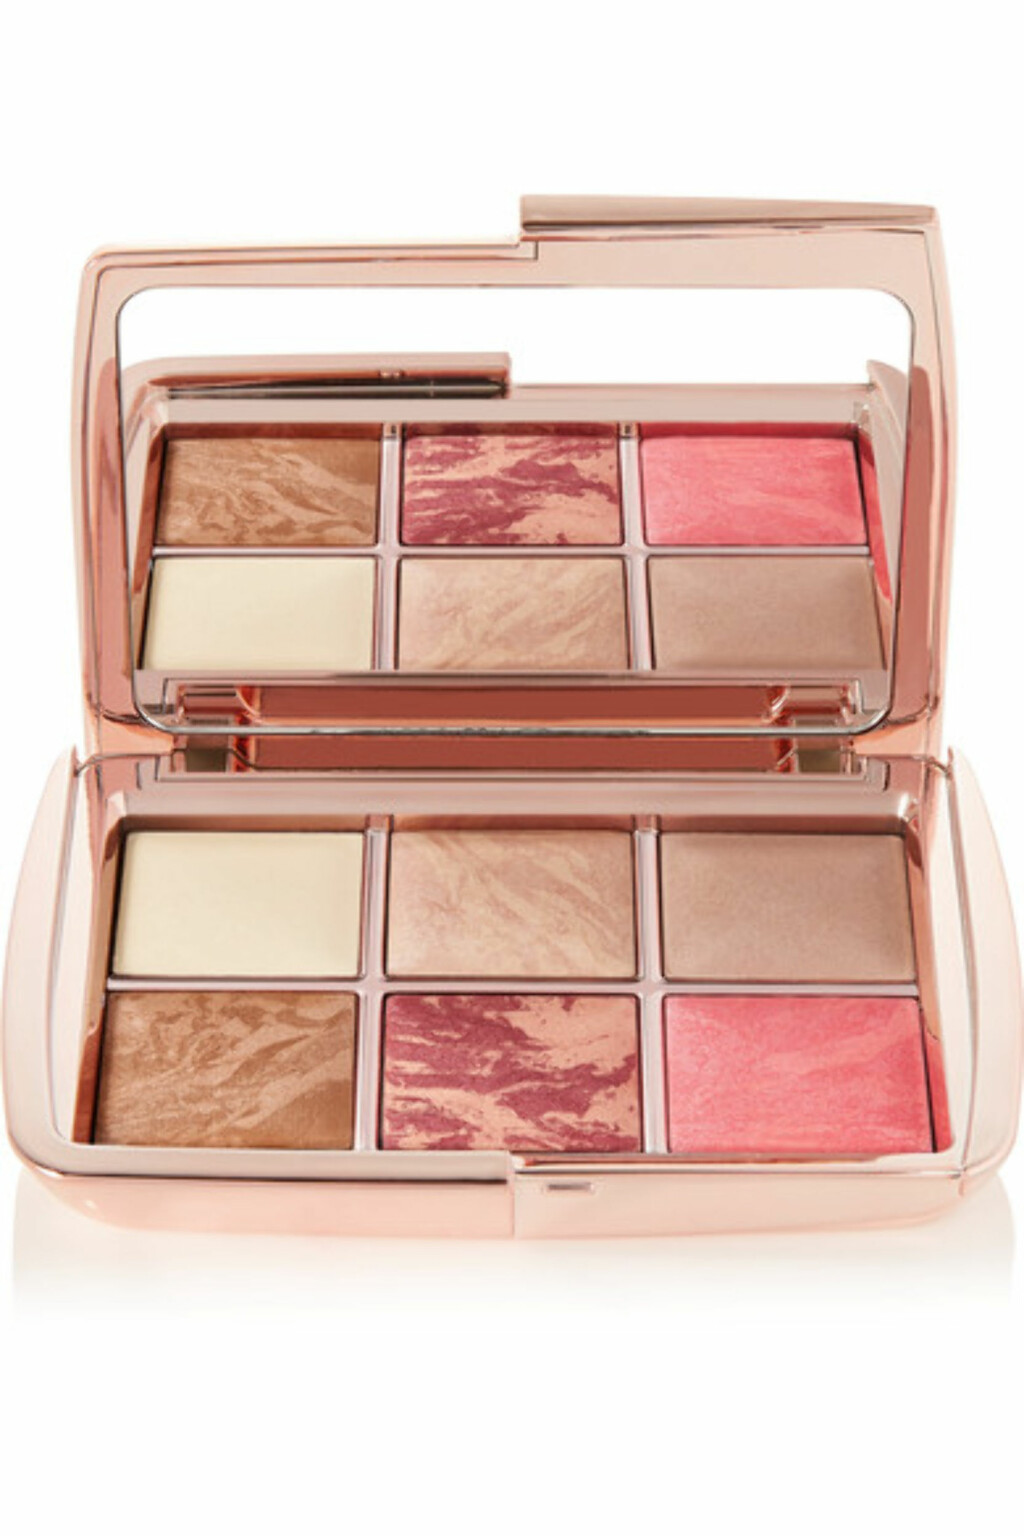 Blush fra Hourglass via Net-a-porter.com |907,-